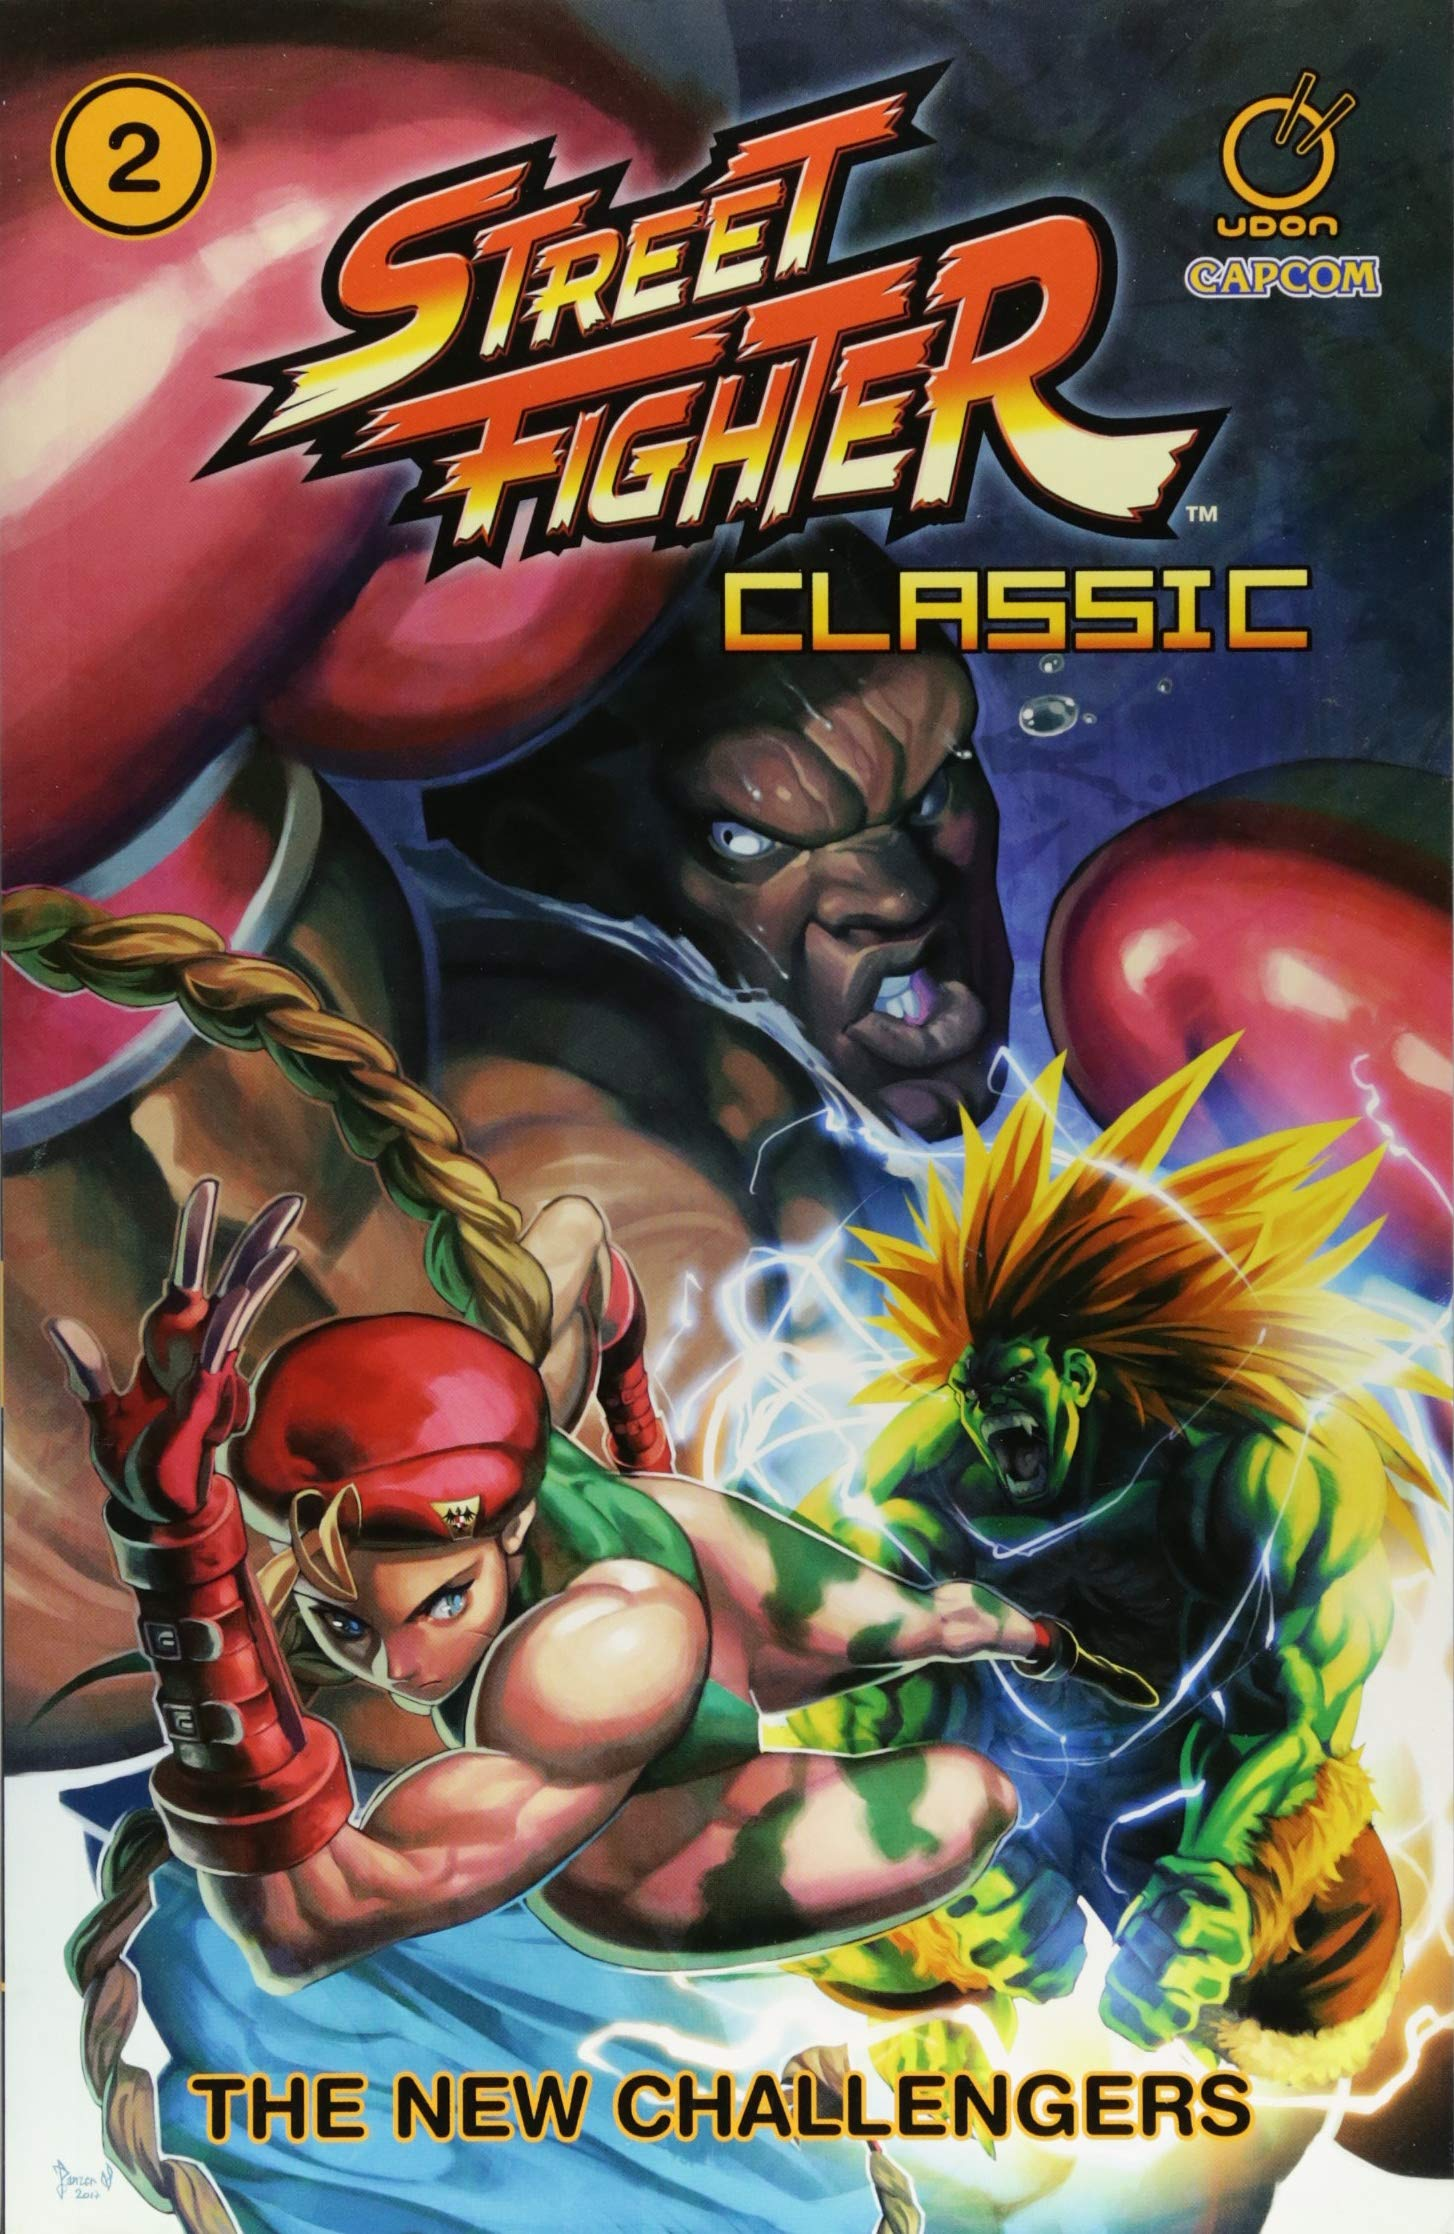 Street Fighter Classic Volume 2: The New Challengers Paperback – July 10, 2018